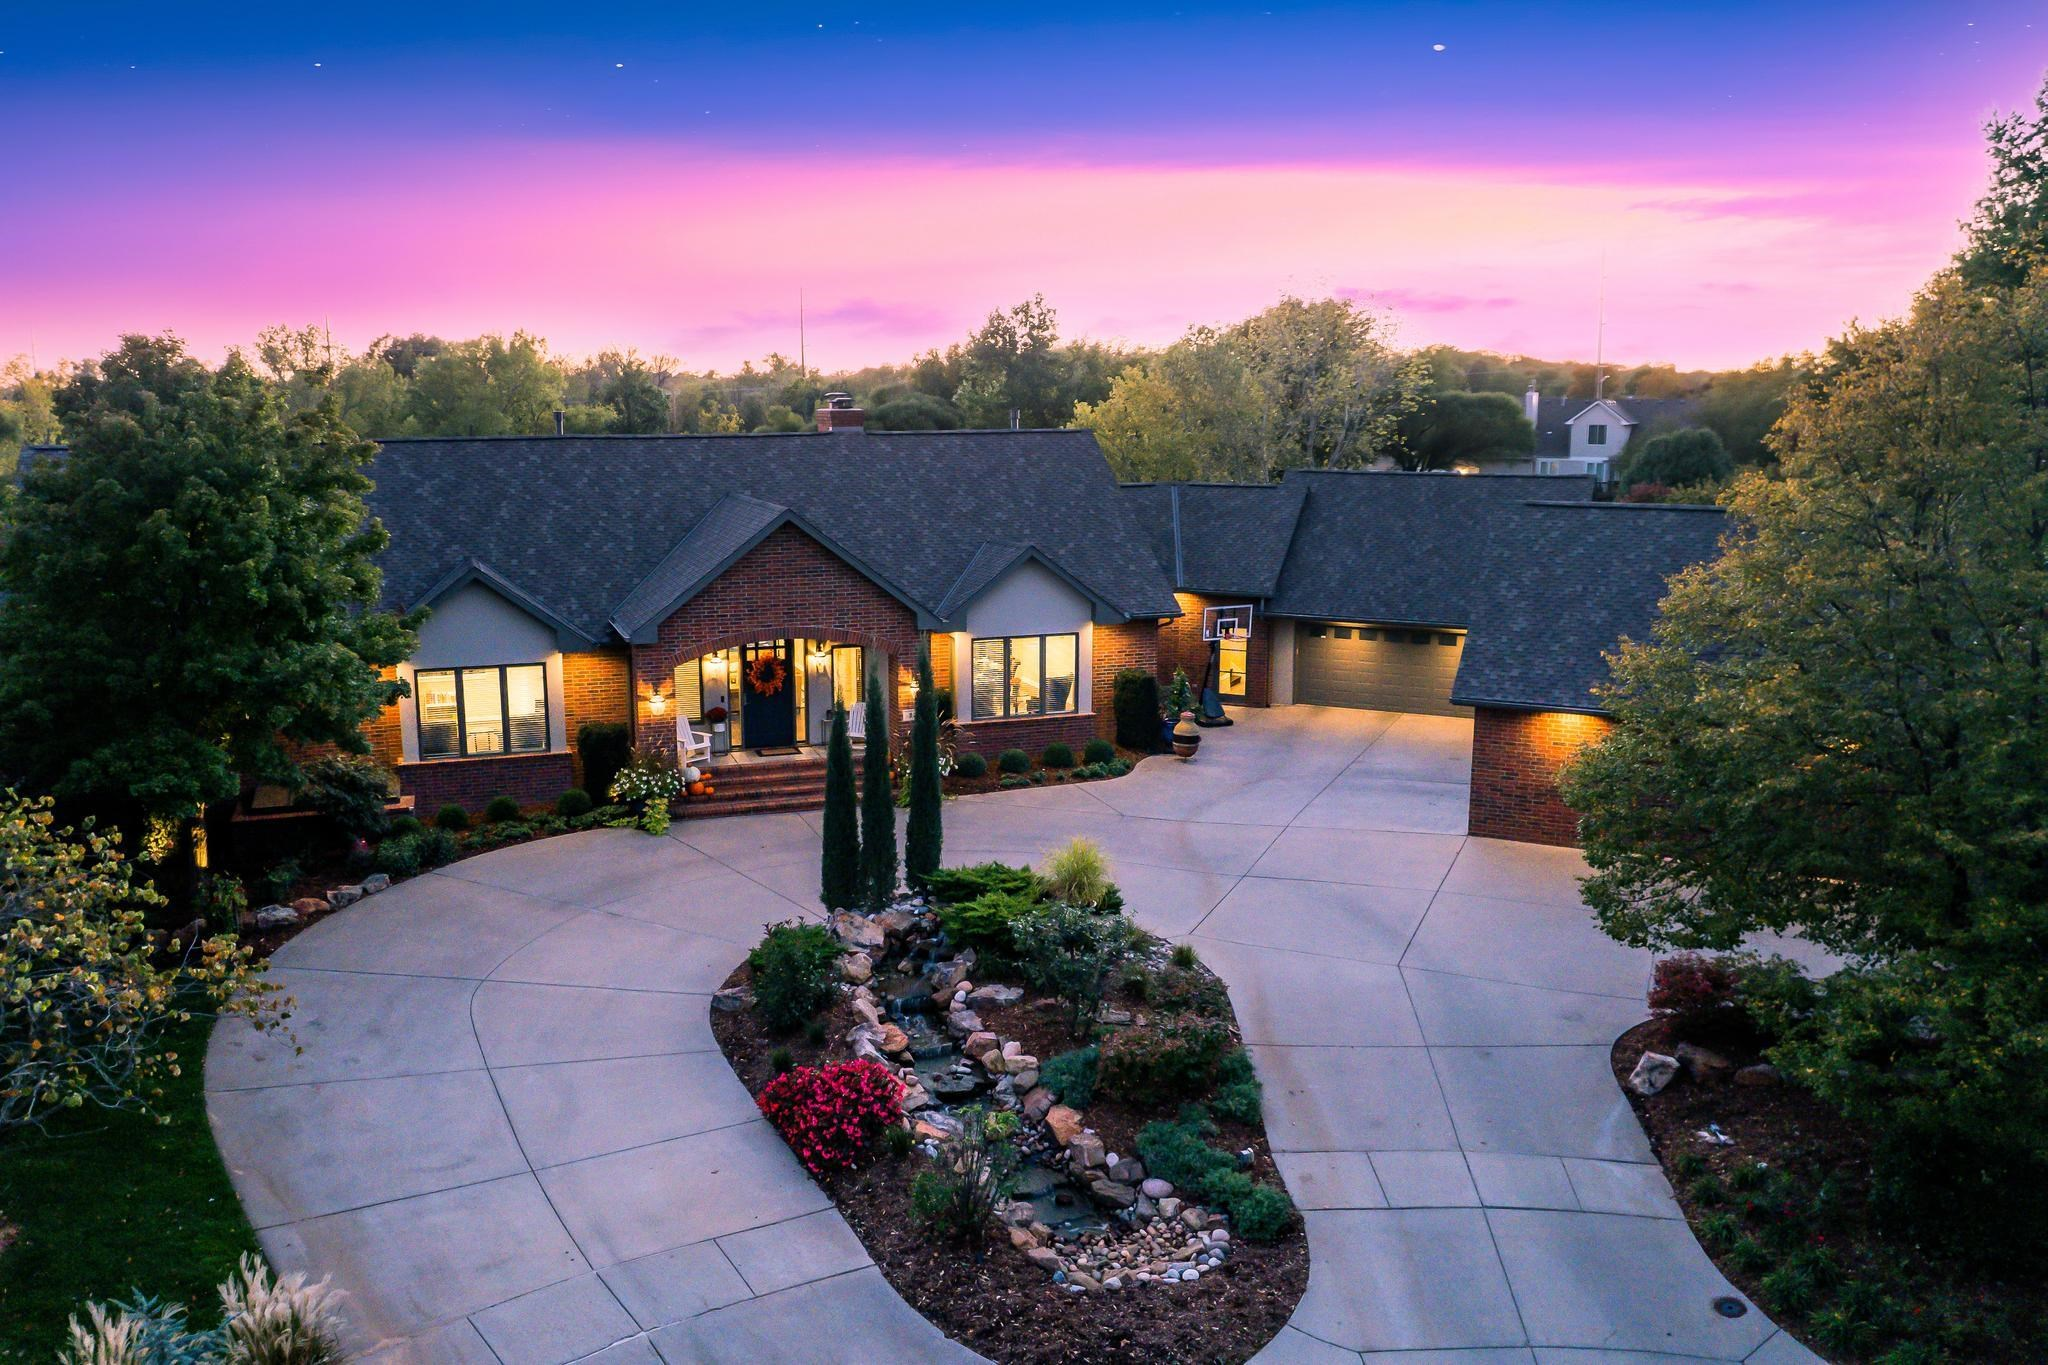 Waterfront home on 1.73 acres that has been elegantly remodeled throughout, situated at the end of a